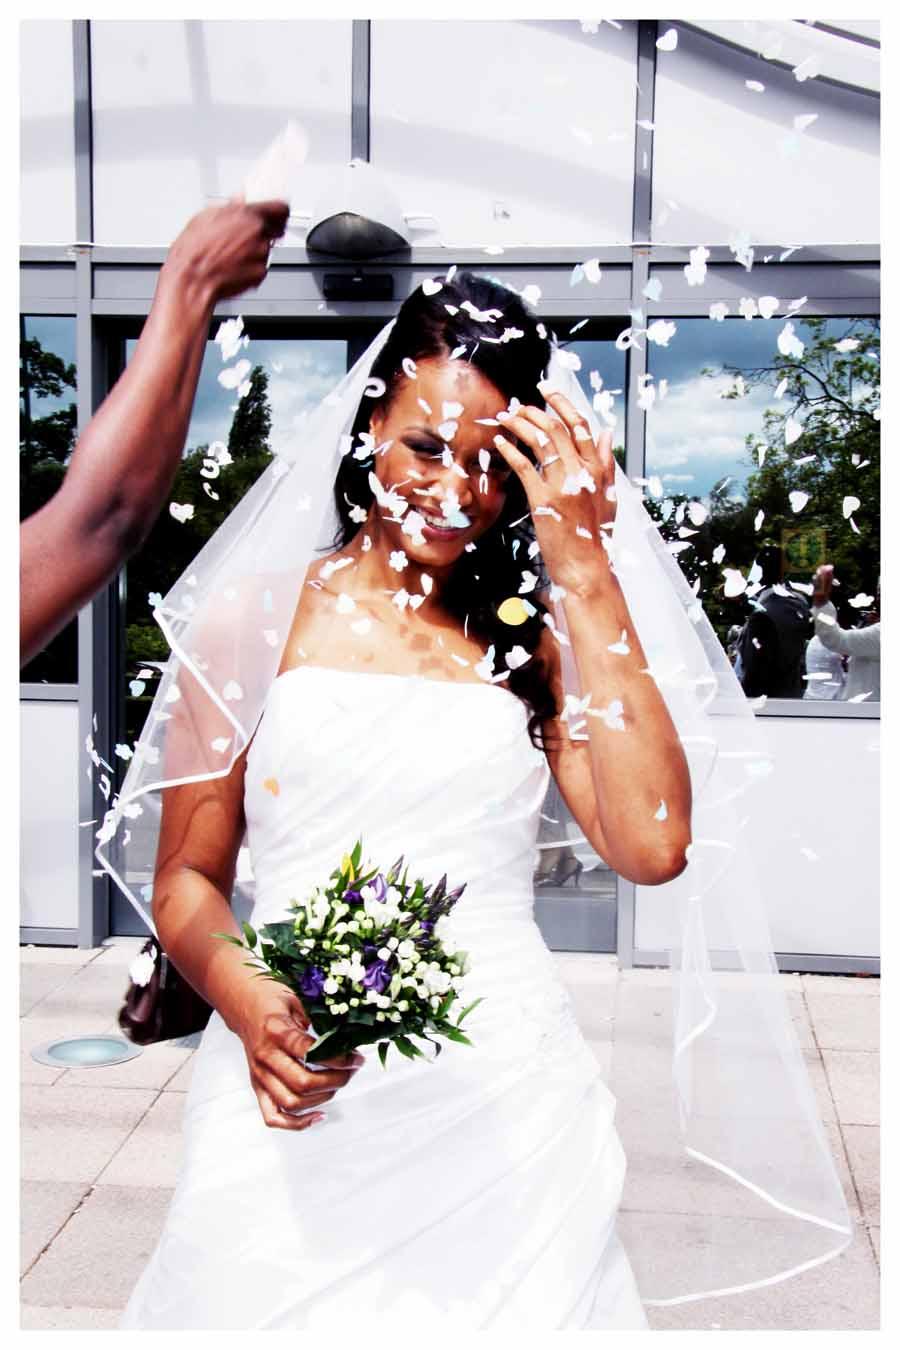 BRIDE Photos by Simeon Thaw copyright 2014 (19).jpg